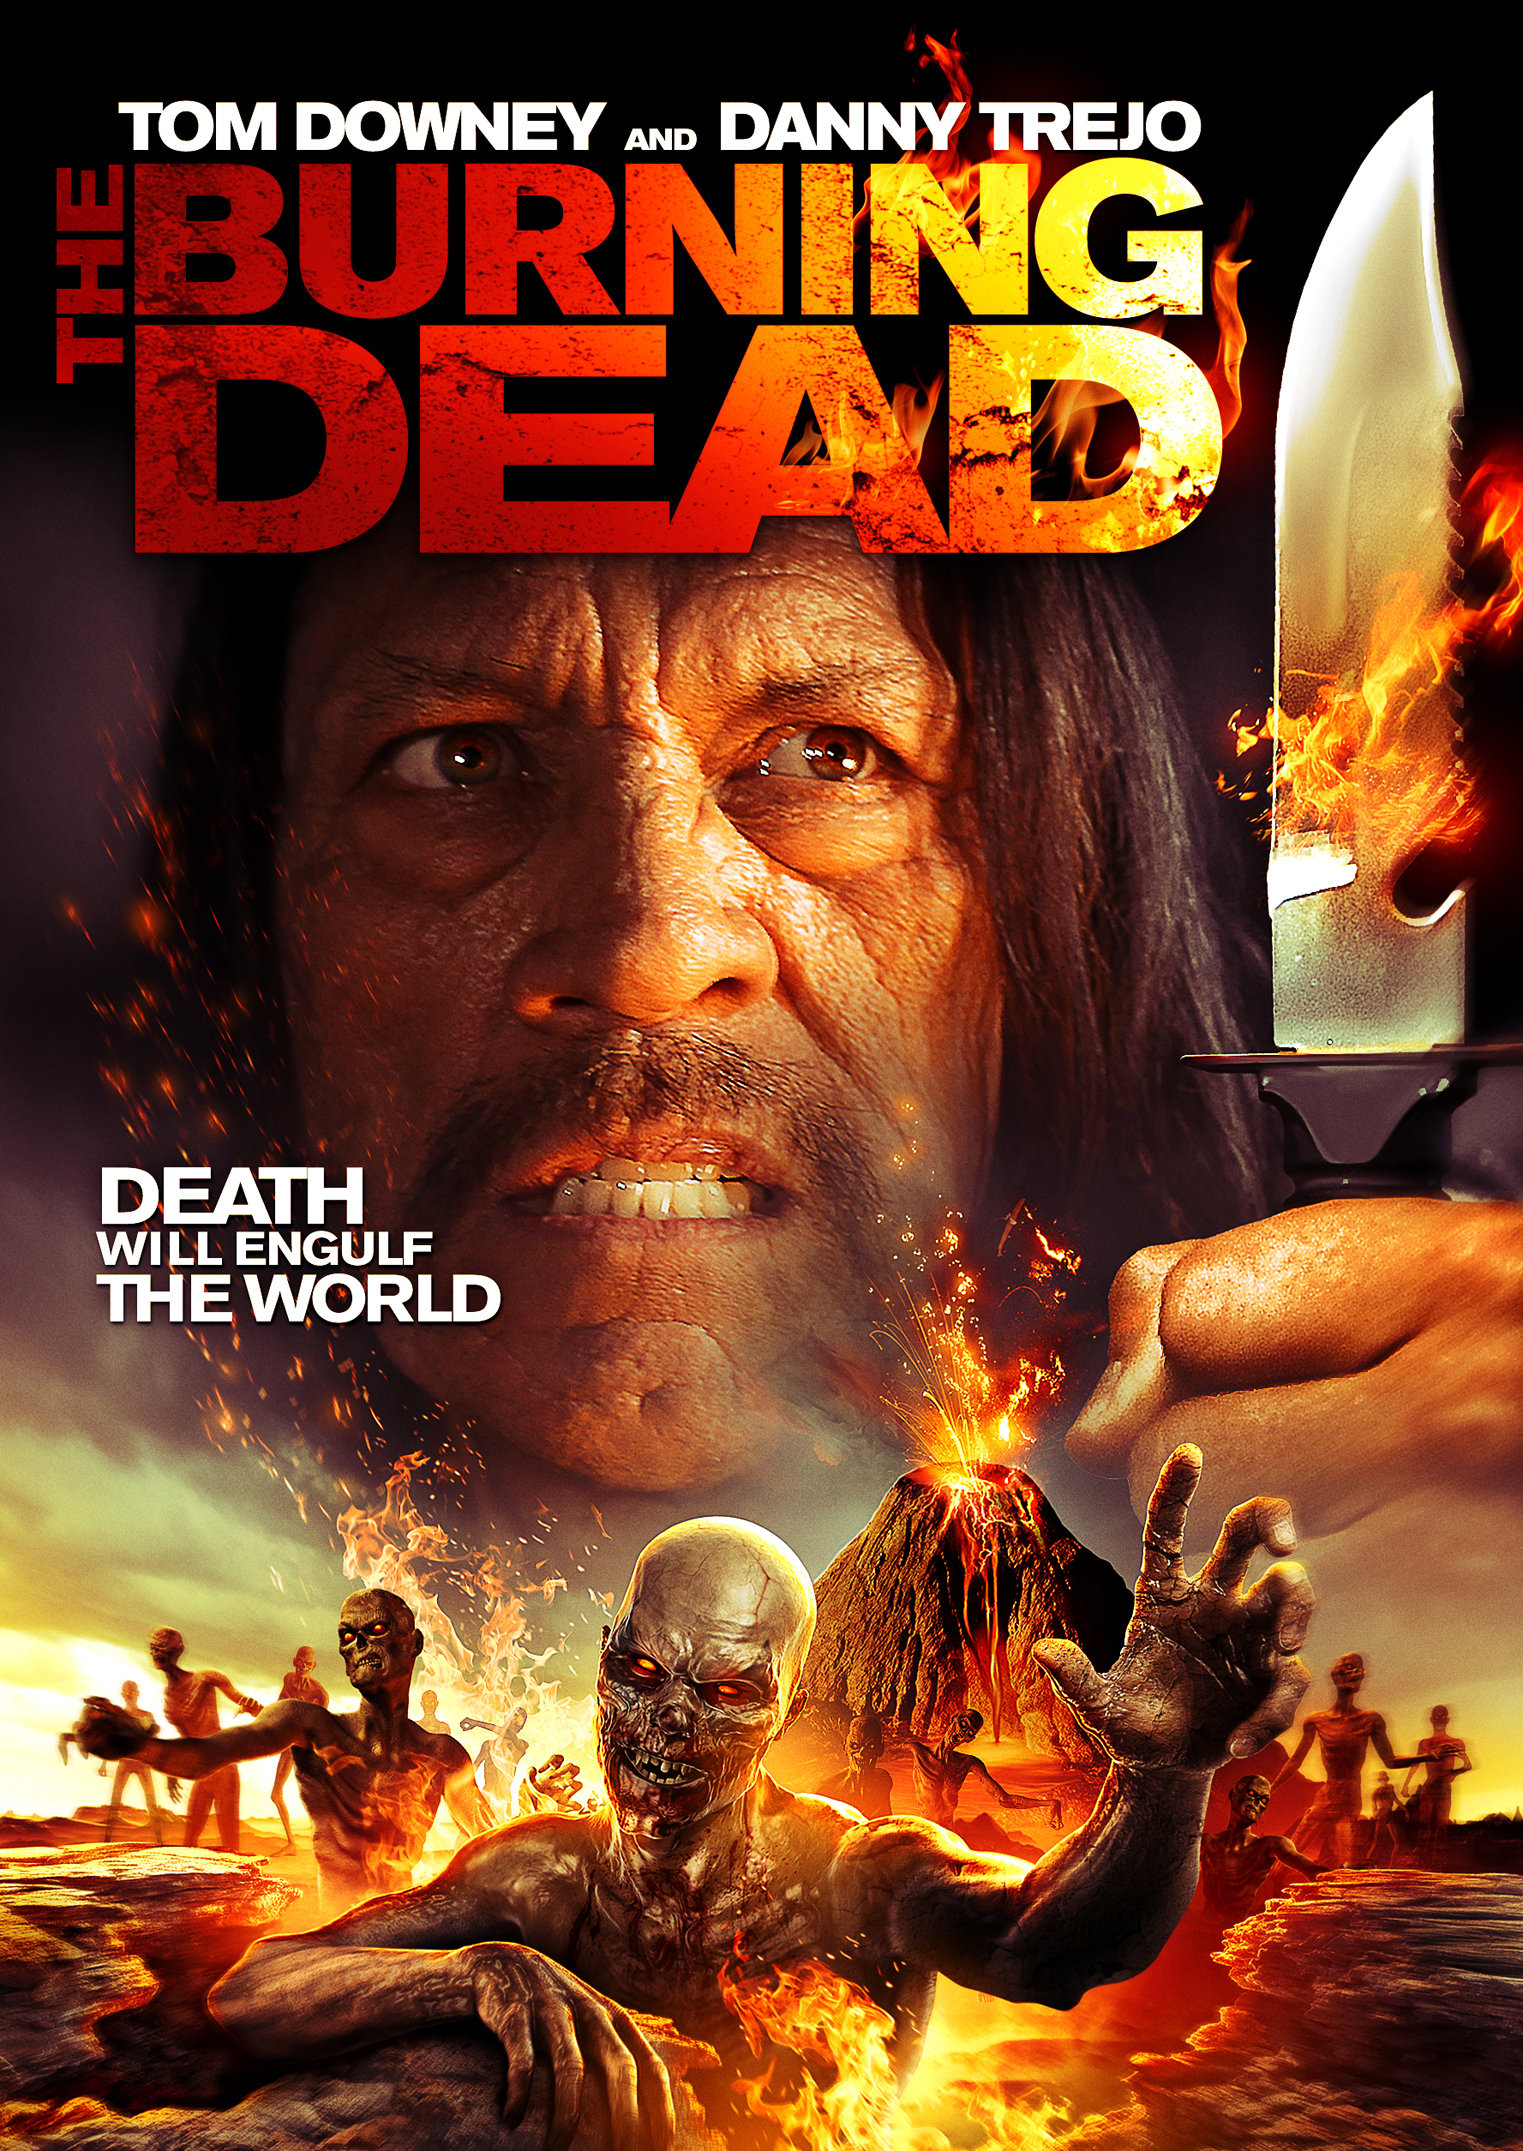 Download The Burning Dead 2015 Hindi Dual Audio 720p BluRay ESubs 1.2GB